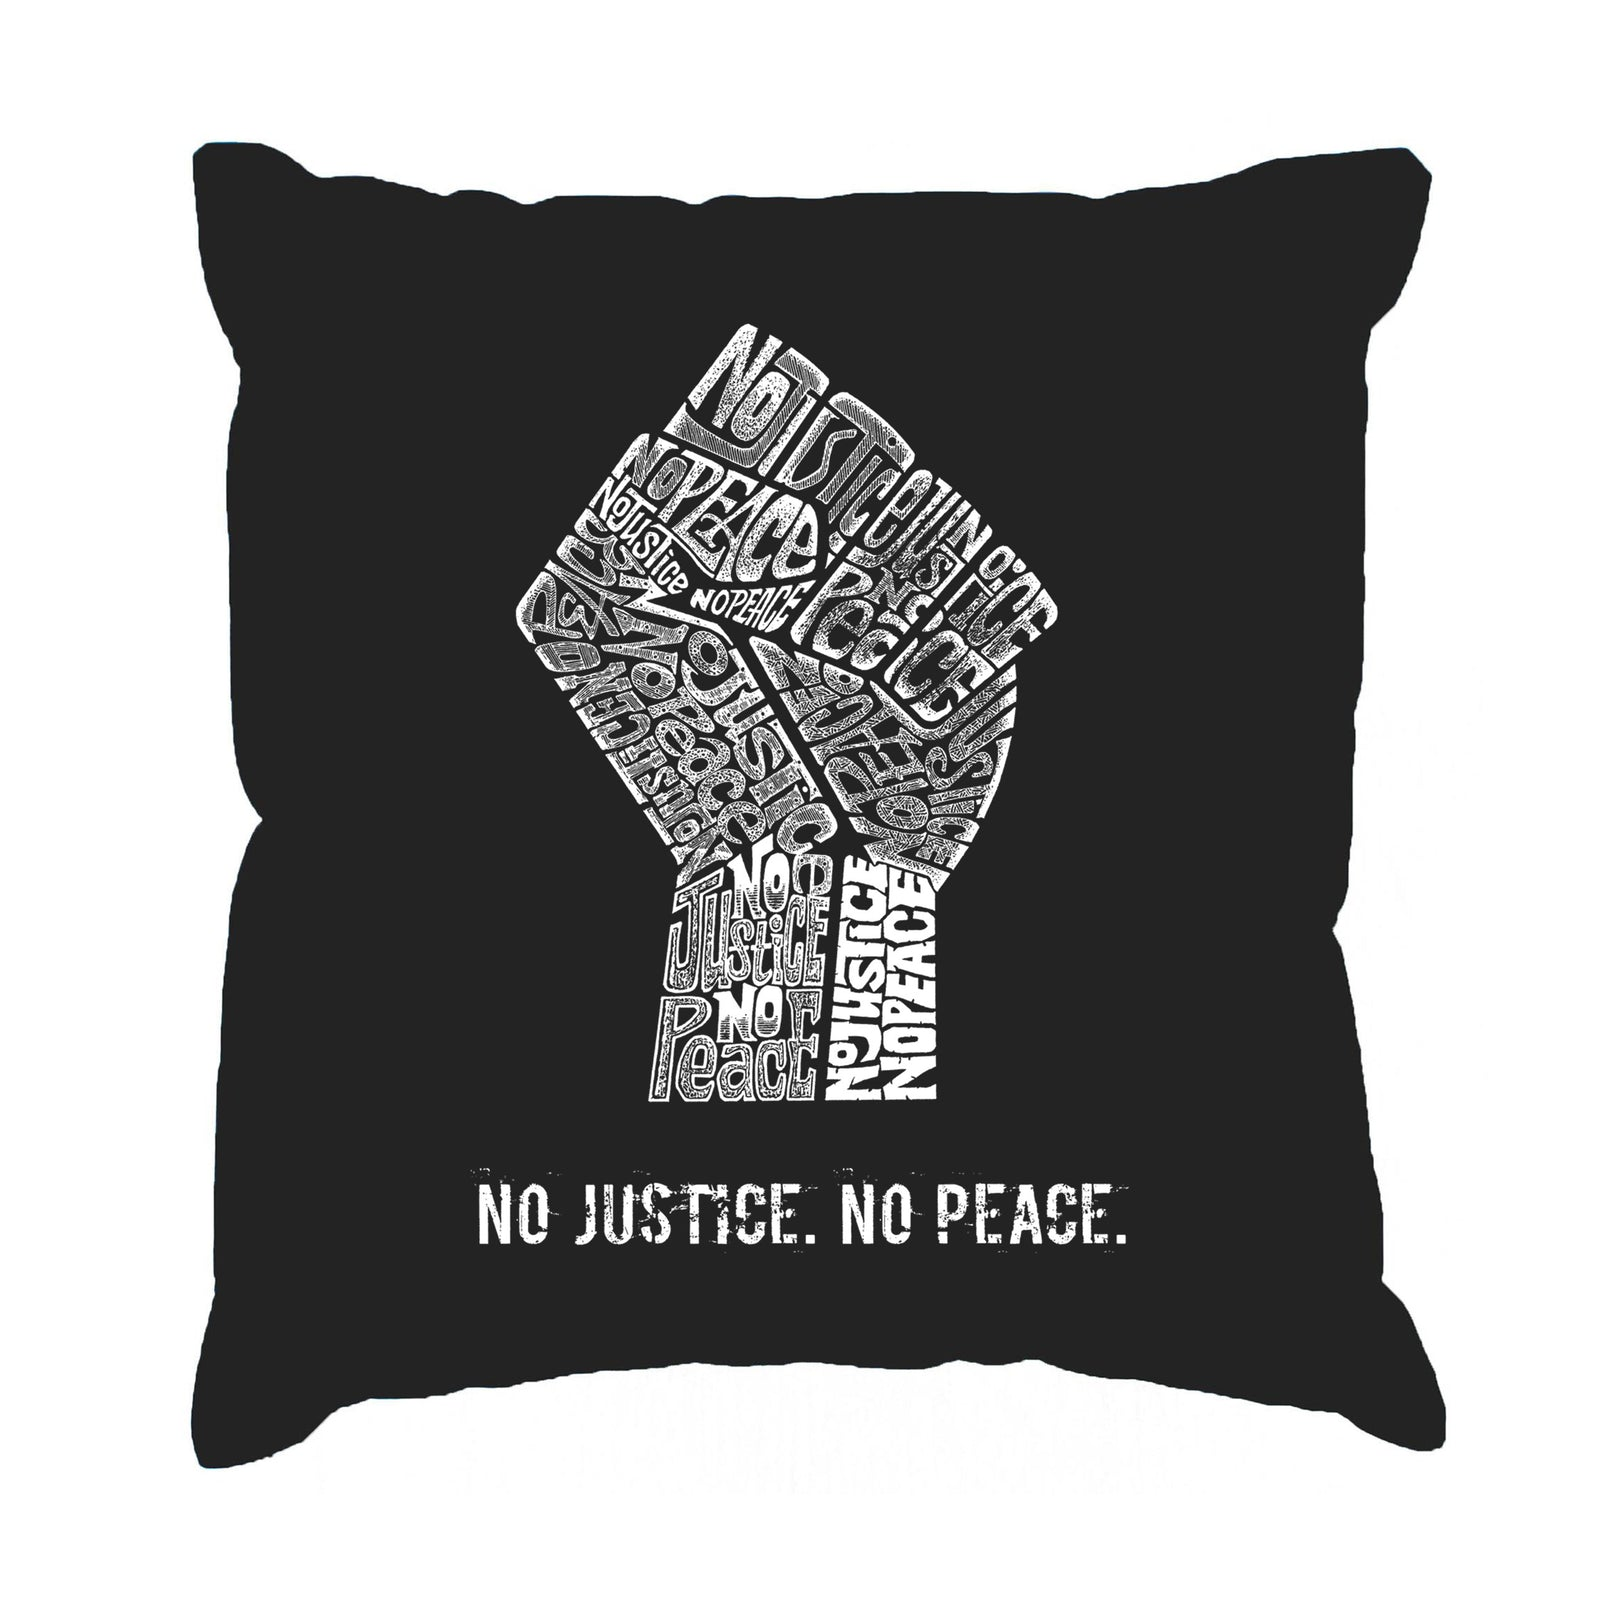 Throw Pillow Cover - No Justice, No Peace